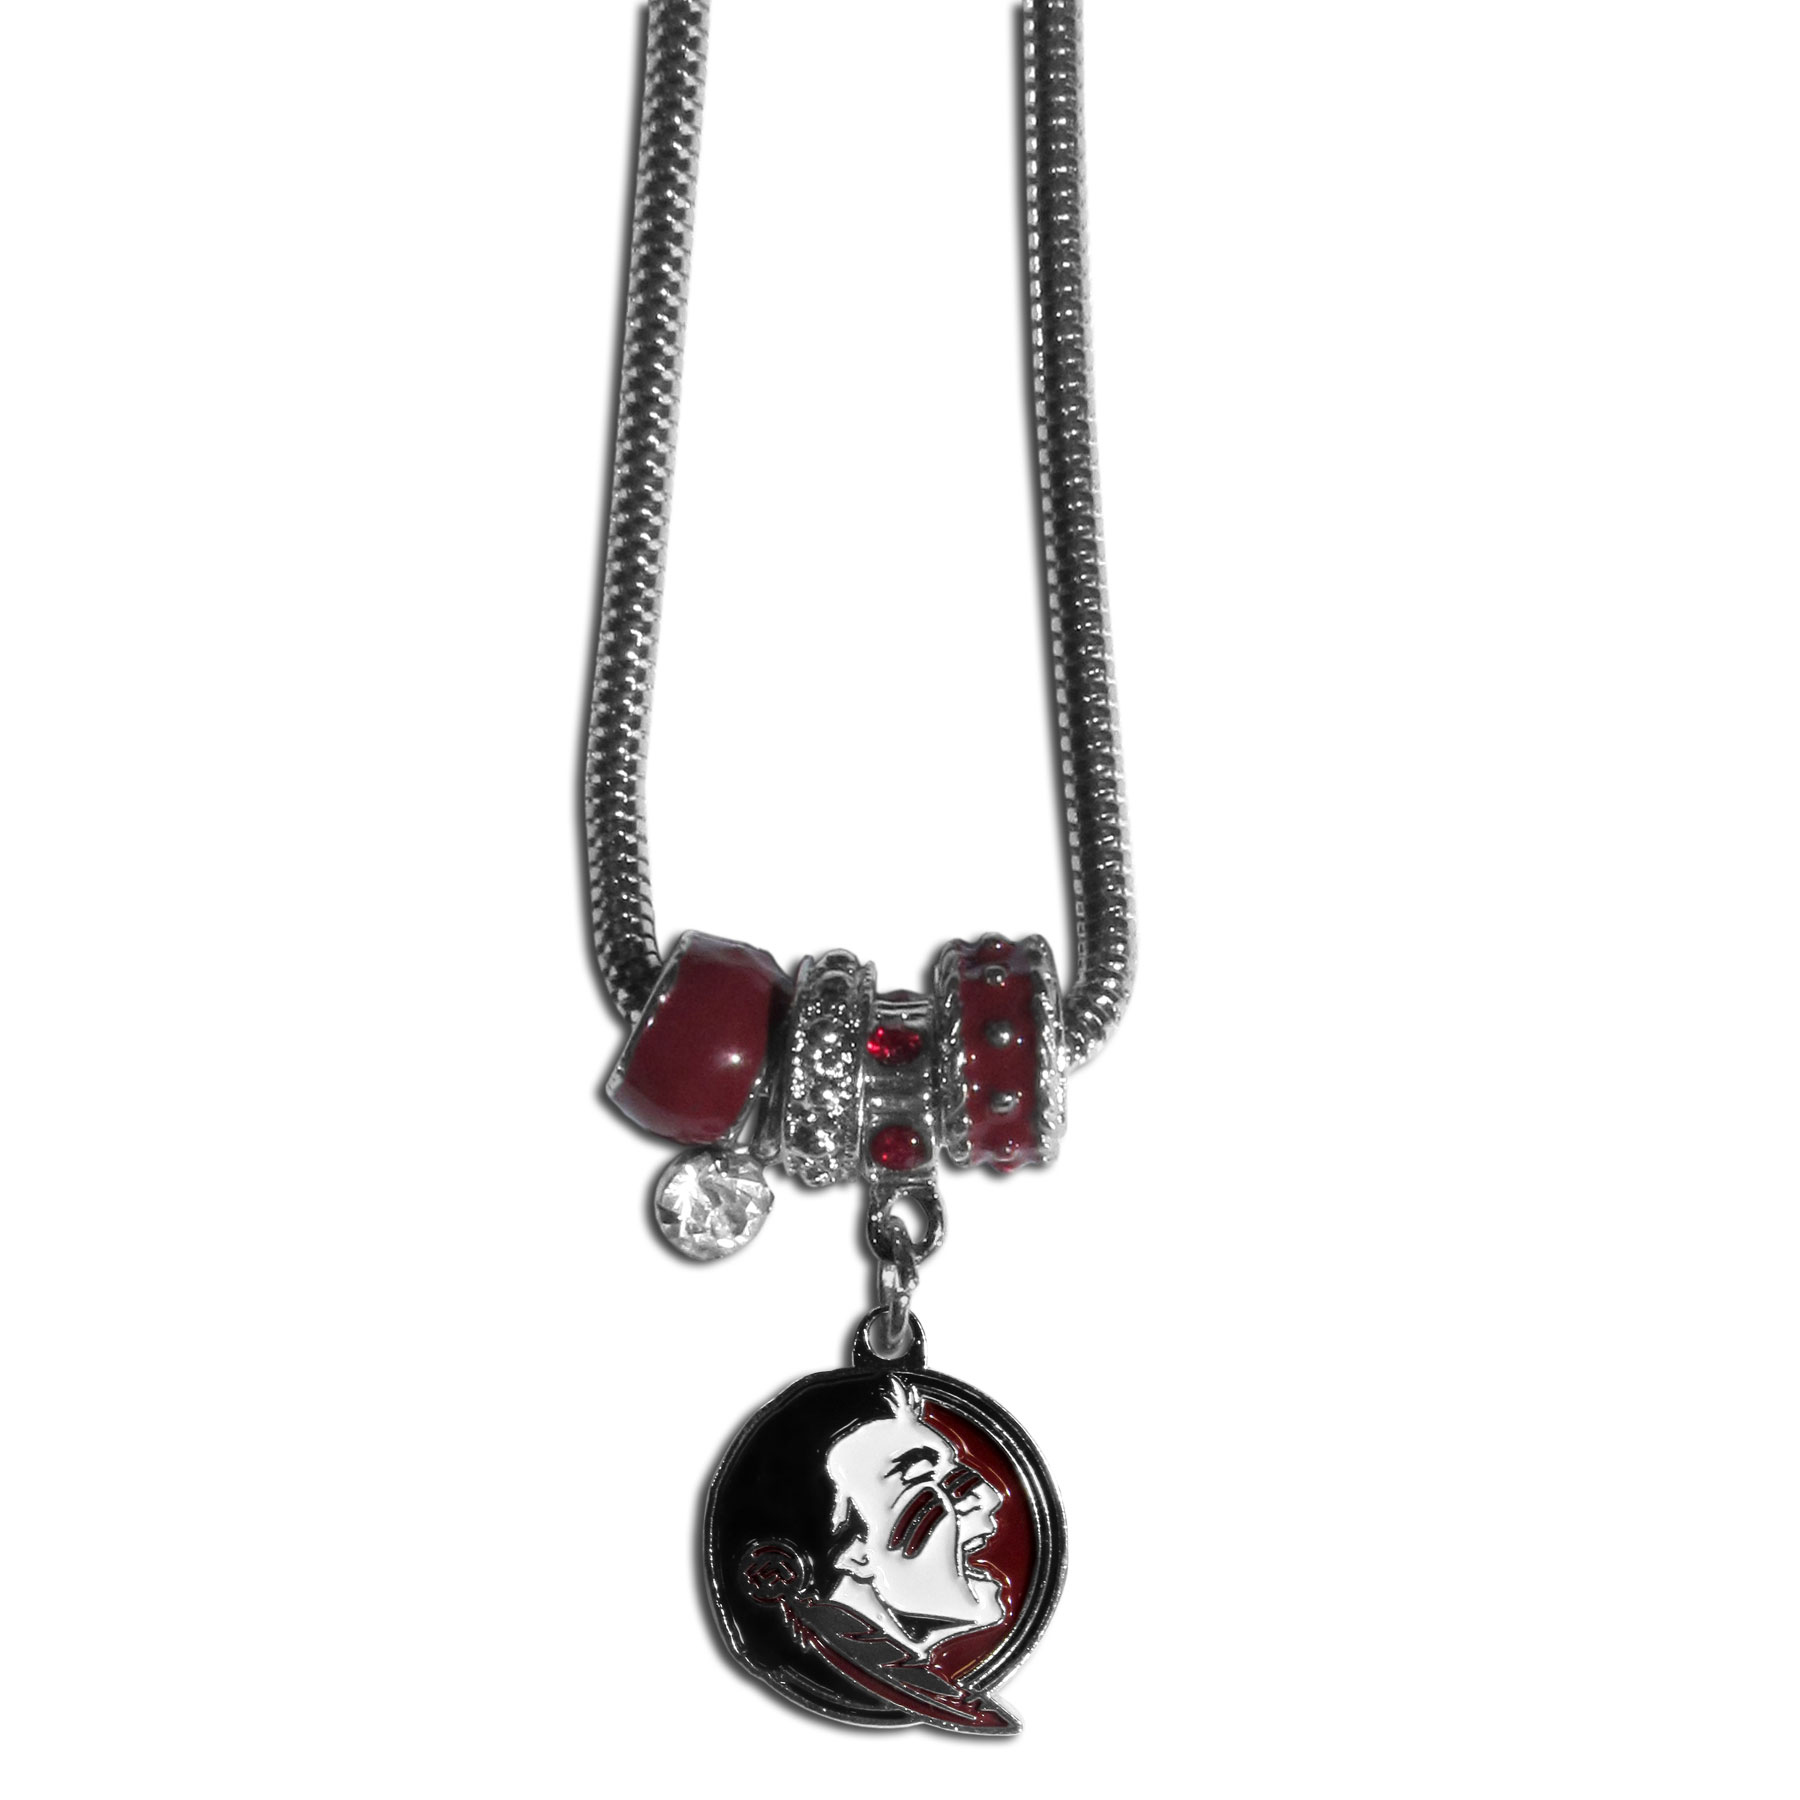 Florida St. Seminoles Euro Bead Necklace - We have combined the wildly popular Euro style beads with your favorite team to create our Florida St. Seminoles bead necklace. The 18 inch snake chain features 4 Euro beads with enameled team colors and rhinestone accents with a high polish, nickel free charm and rhinestone charm. Perfect way to show off your team pride.